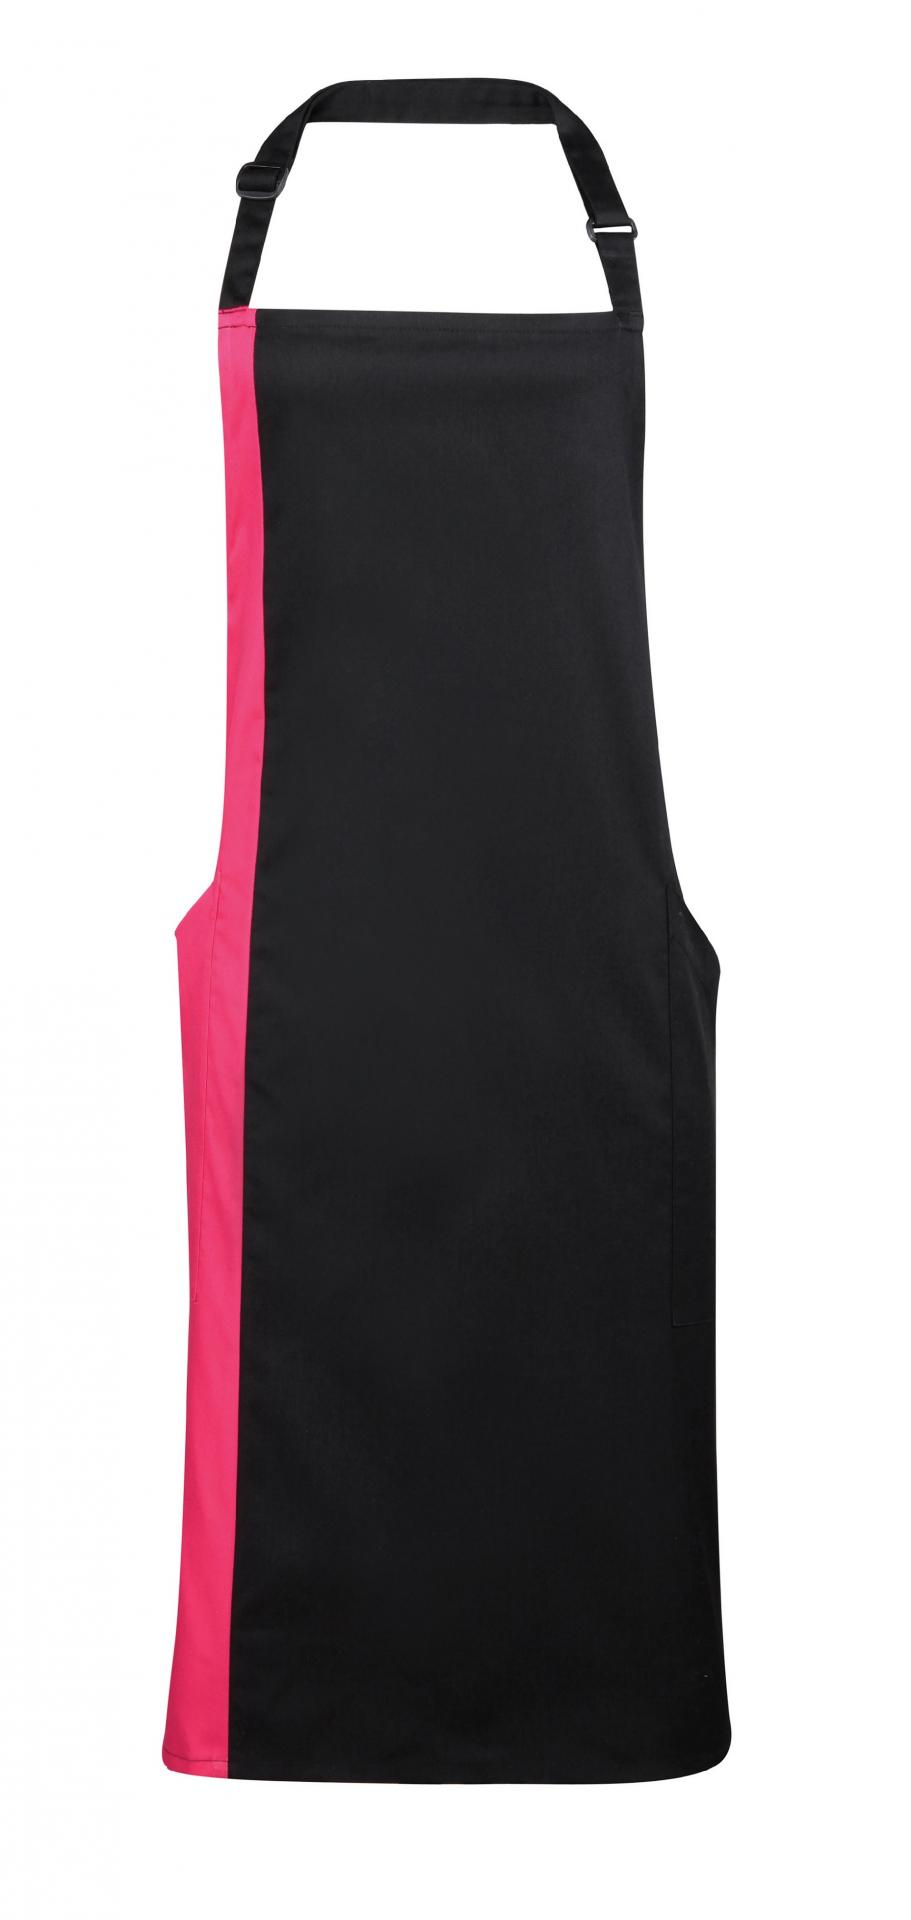 Pr162 black hotpink ft